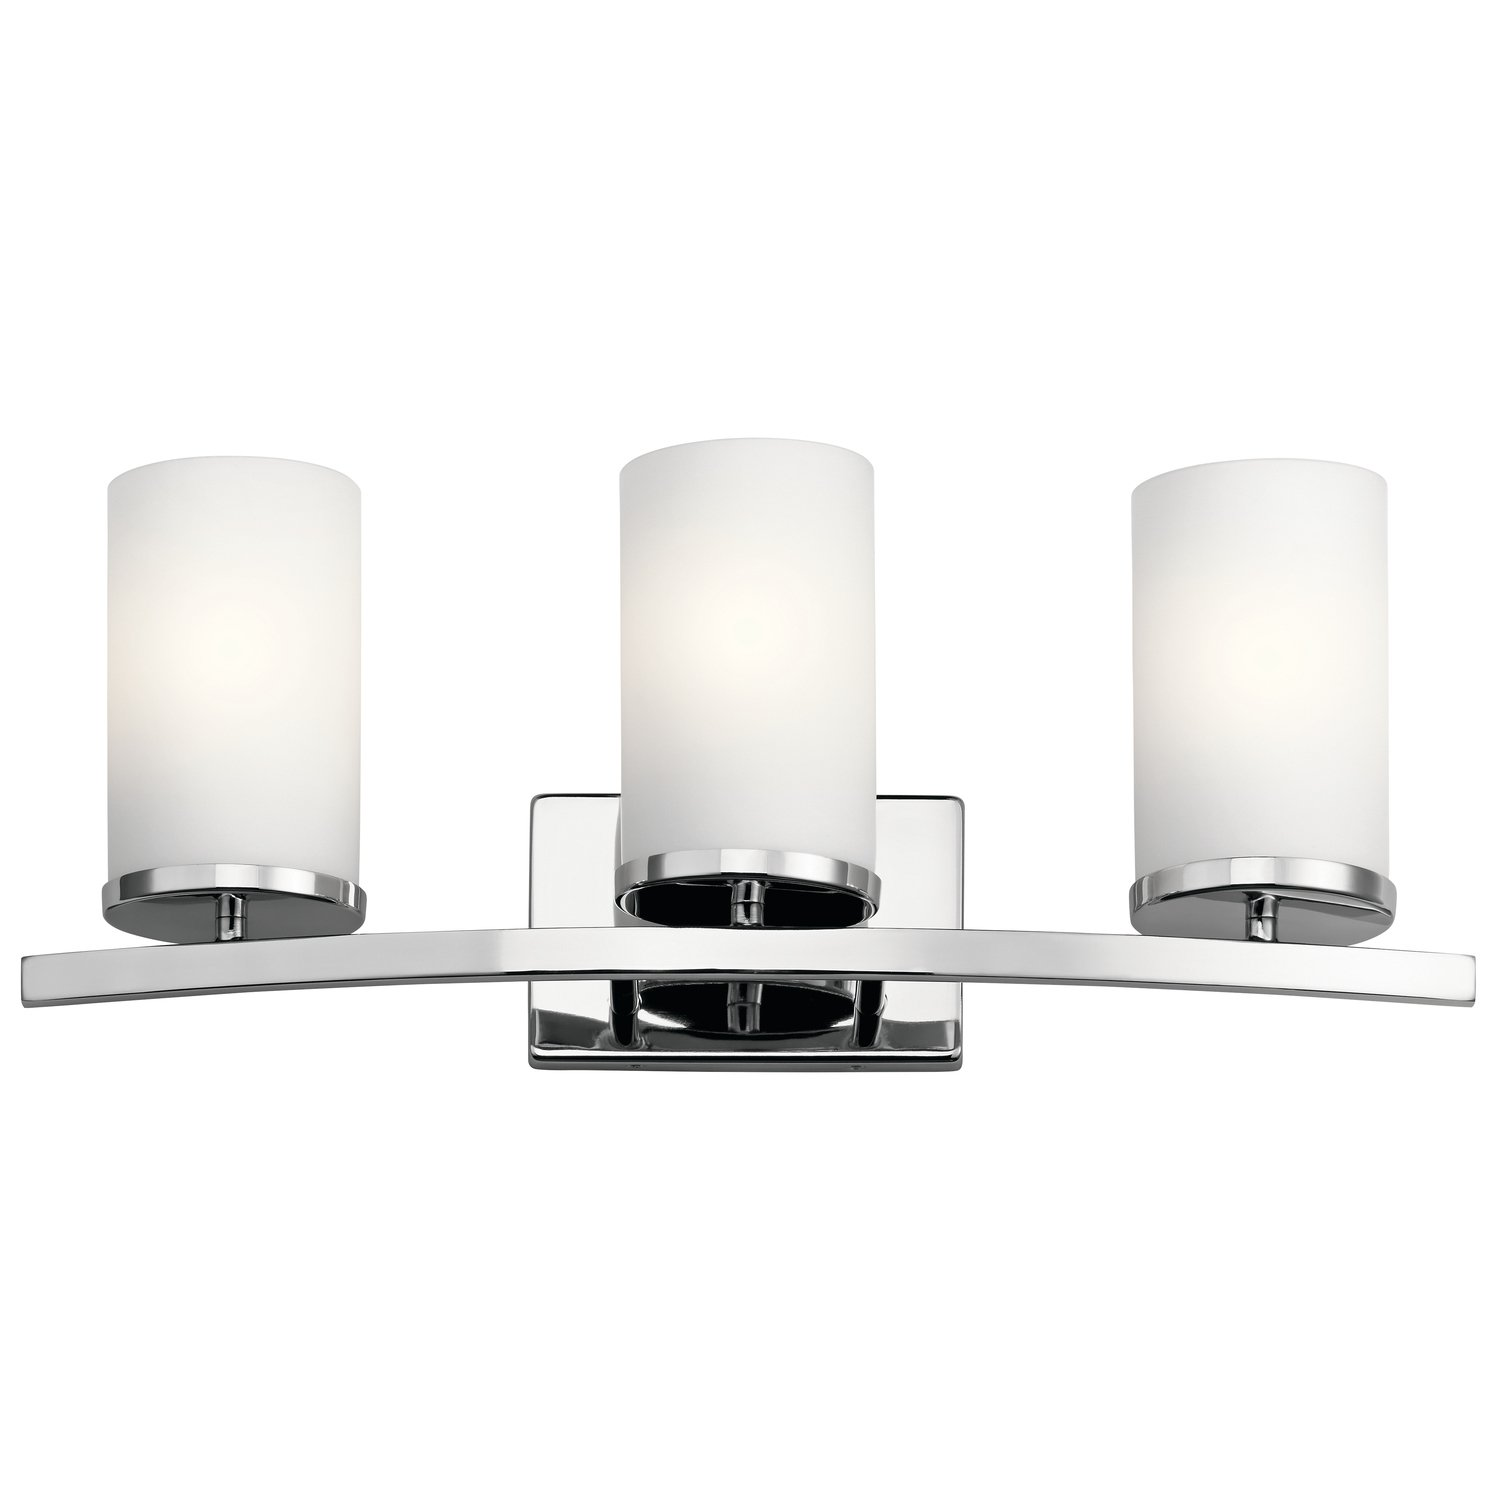 Kichler Lighting 45497CH Crosby - Three Light Bath Vanity, Chrome Finish with Satin Etched Cased Opal Glass 80%OFF